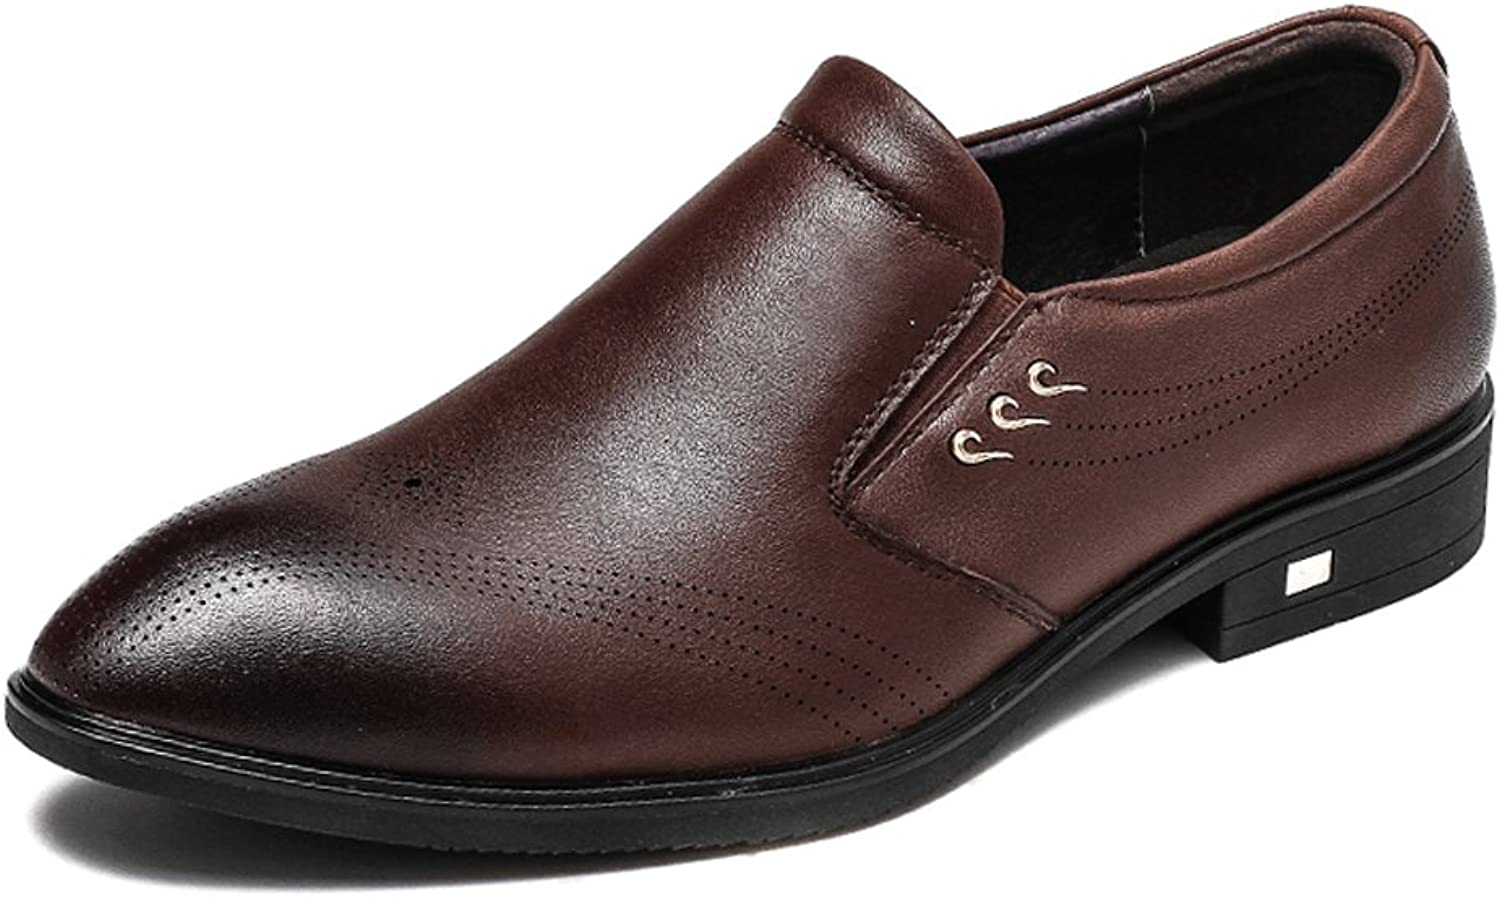 ABDVOOD Mens Tuxedo Formal Dress shoes Genuine Leather Breathable Pointed-Toe Slip On Oxford by